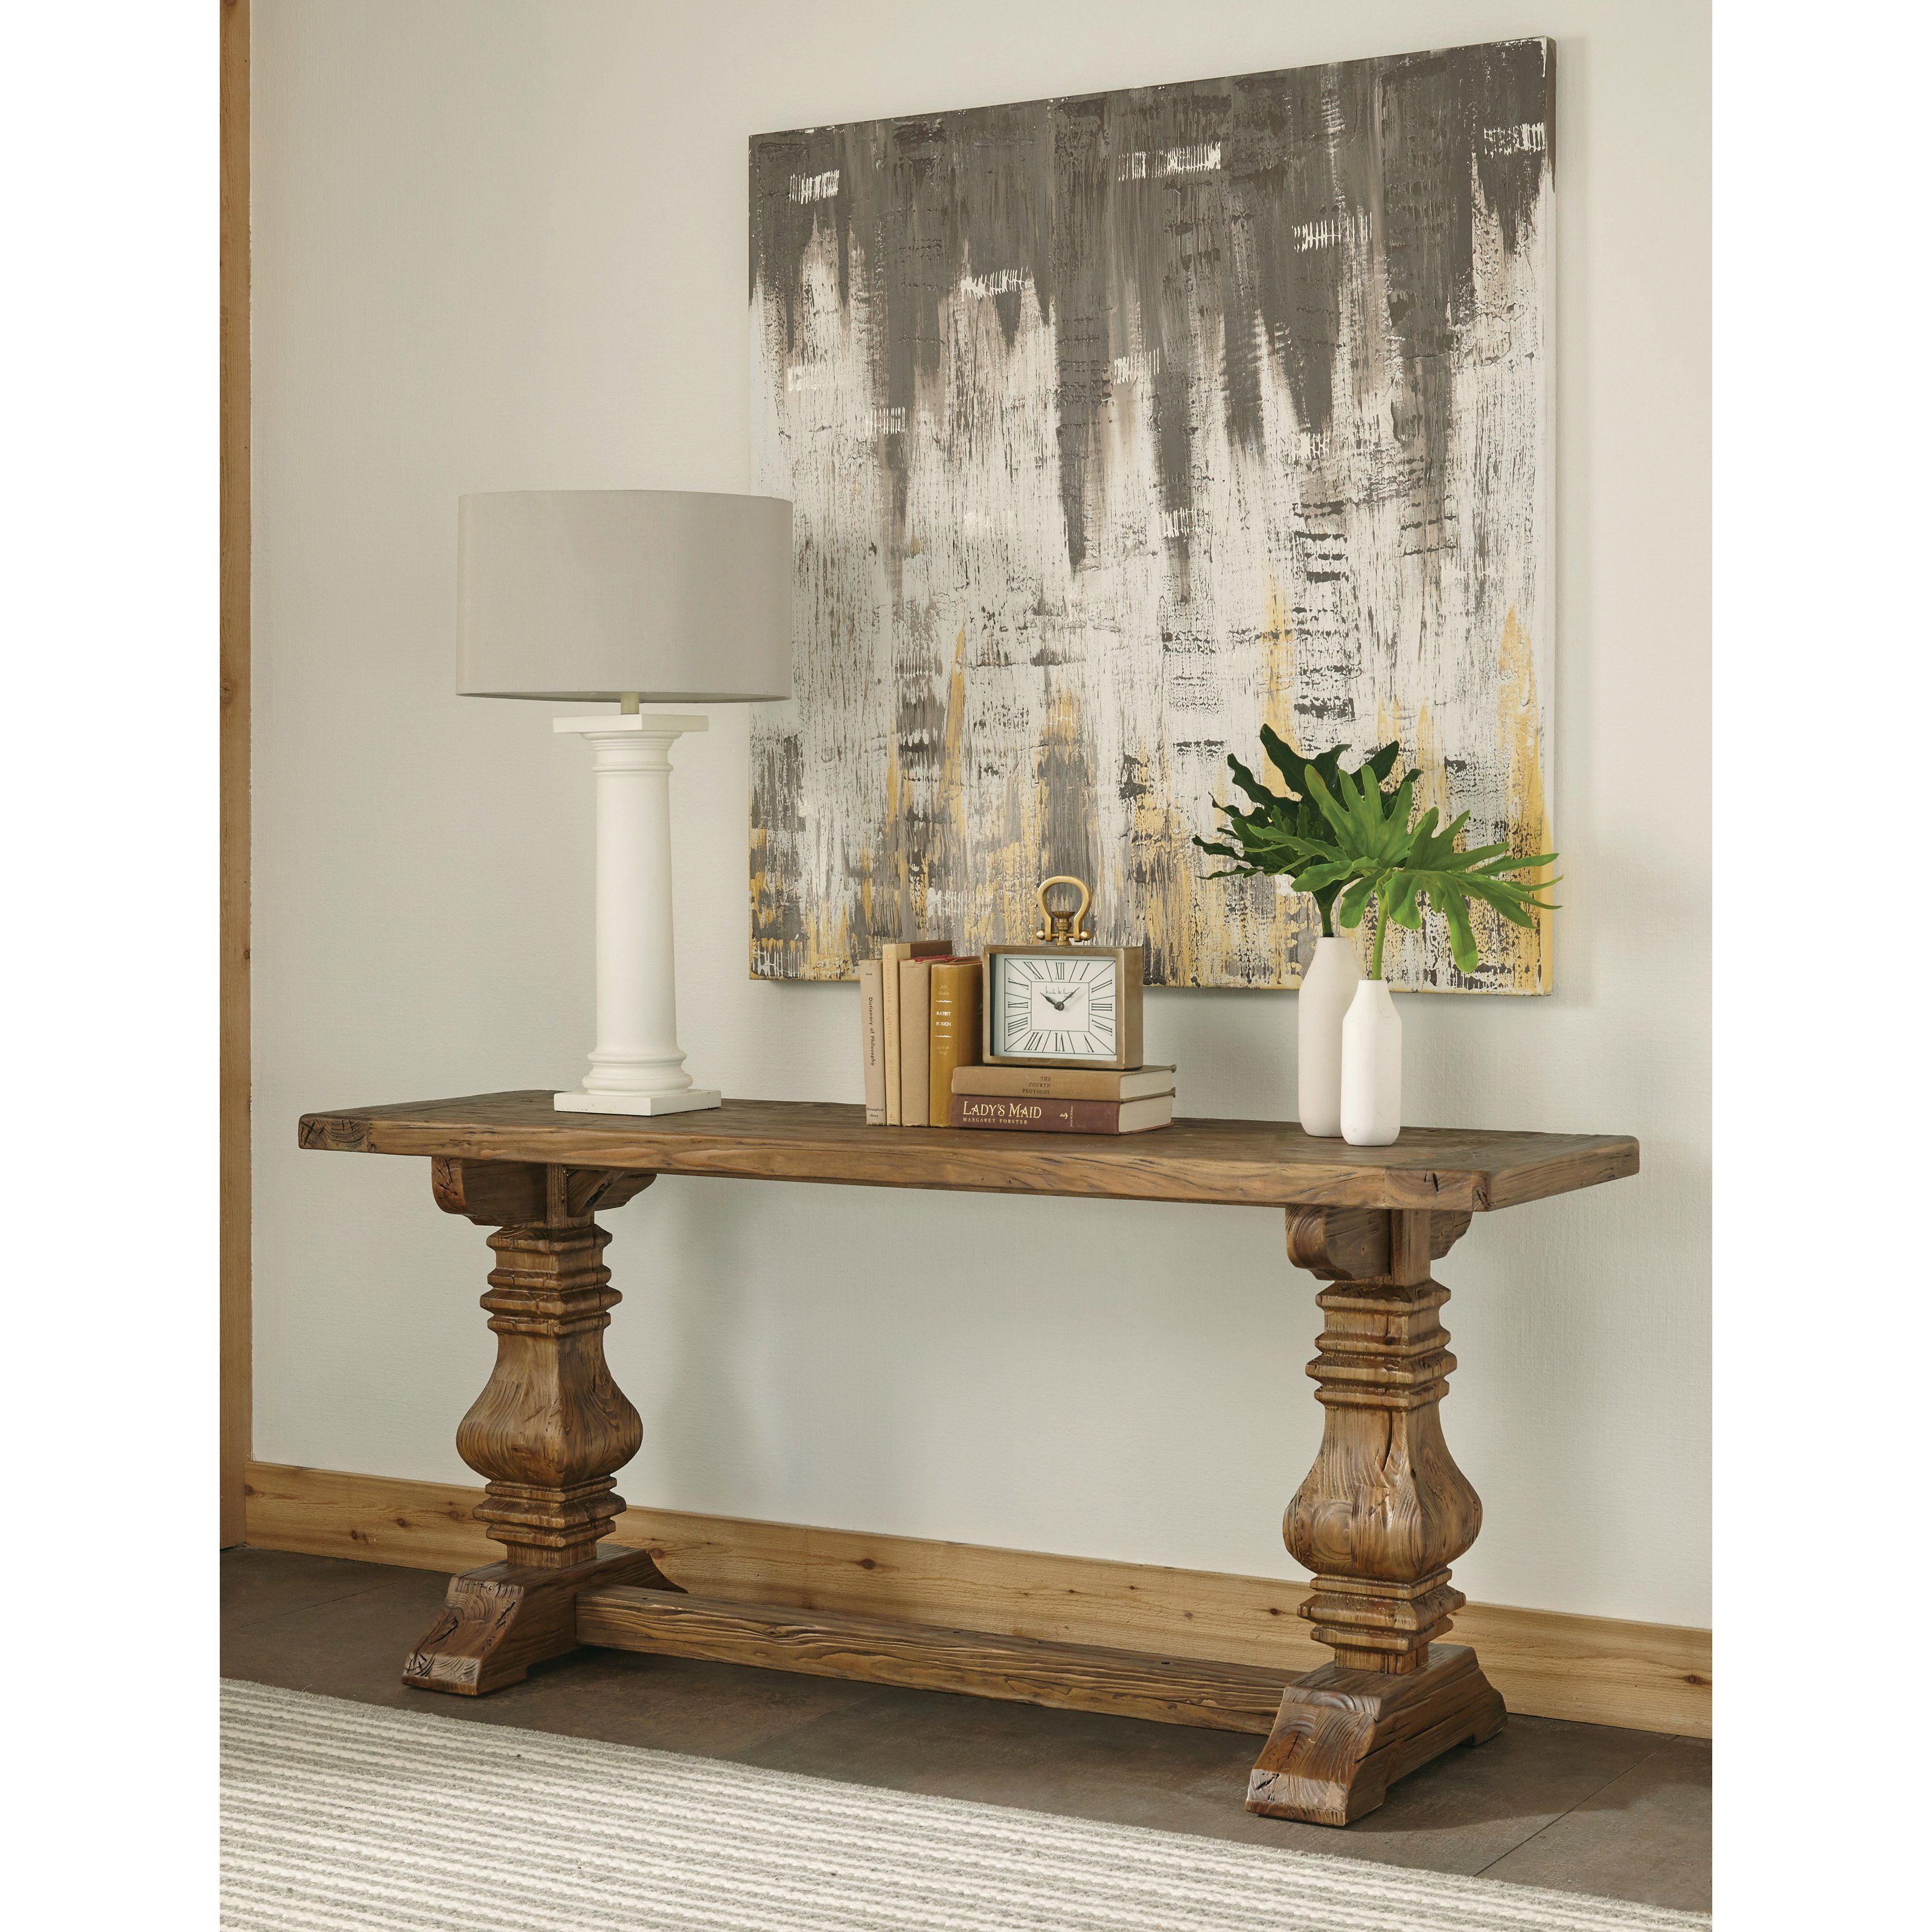 Riverside furniture hawthorne console table shabby chic